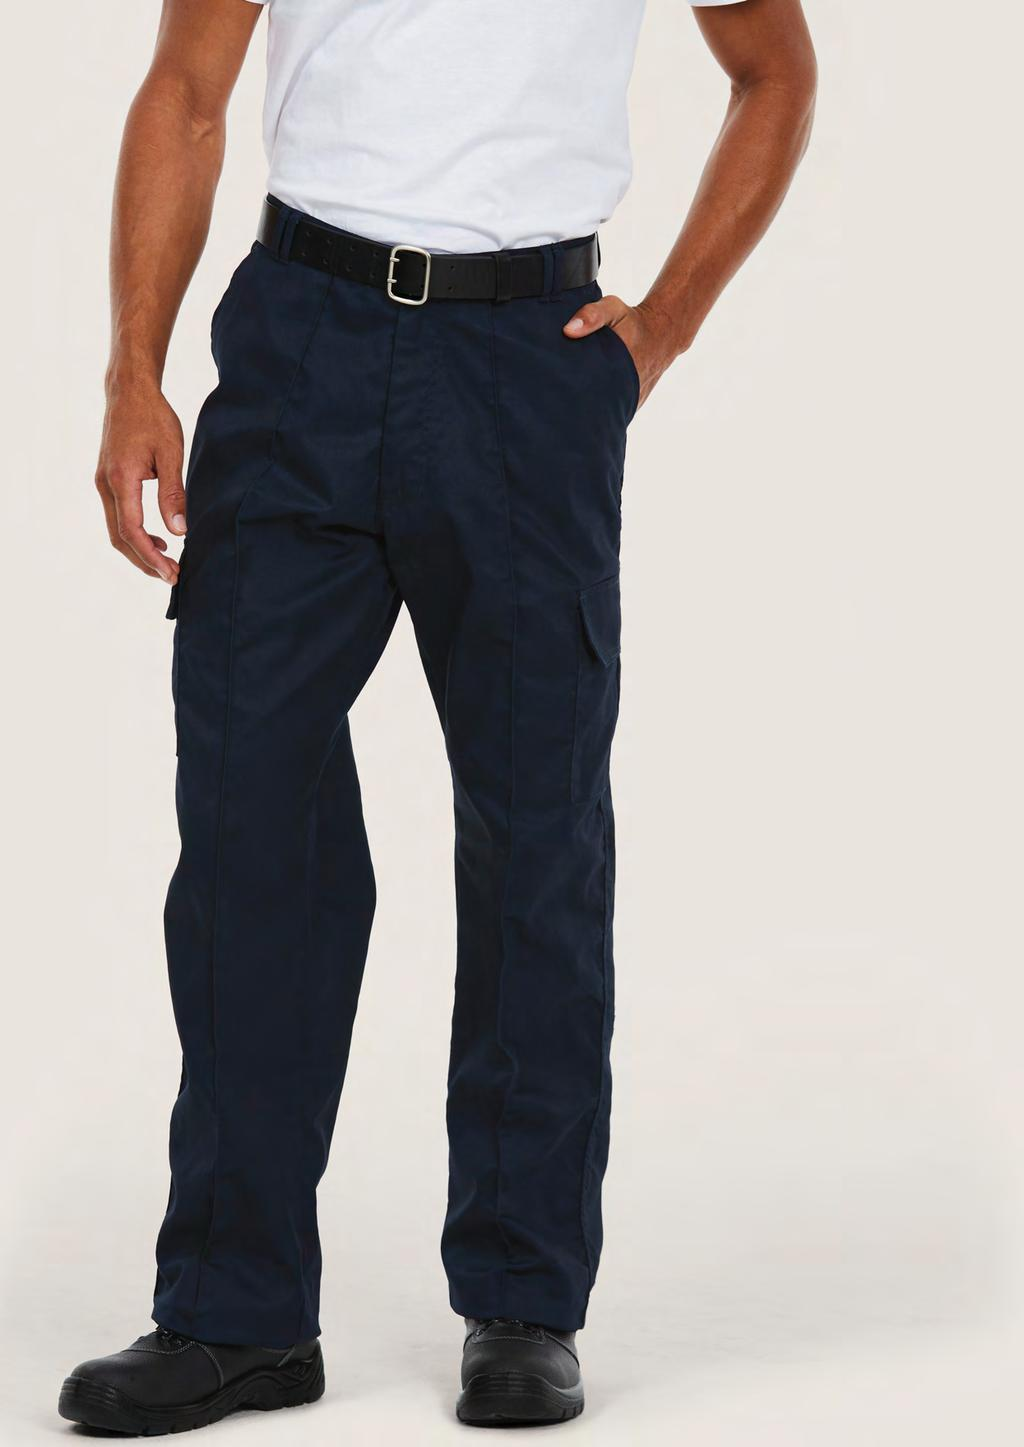 TROUSERS UC902 UNISEX CARGO TROUSER 245 60 25/5 65% Polyester 35% Cotton Fabric: 245 /7 oz Flat front with sewn-in front crease 2 side & 2 rear pockets with velcro flaps 2 thigh pockets with velcro